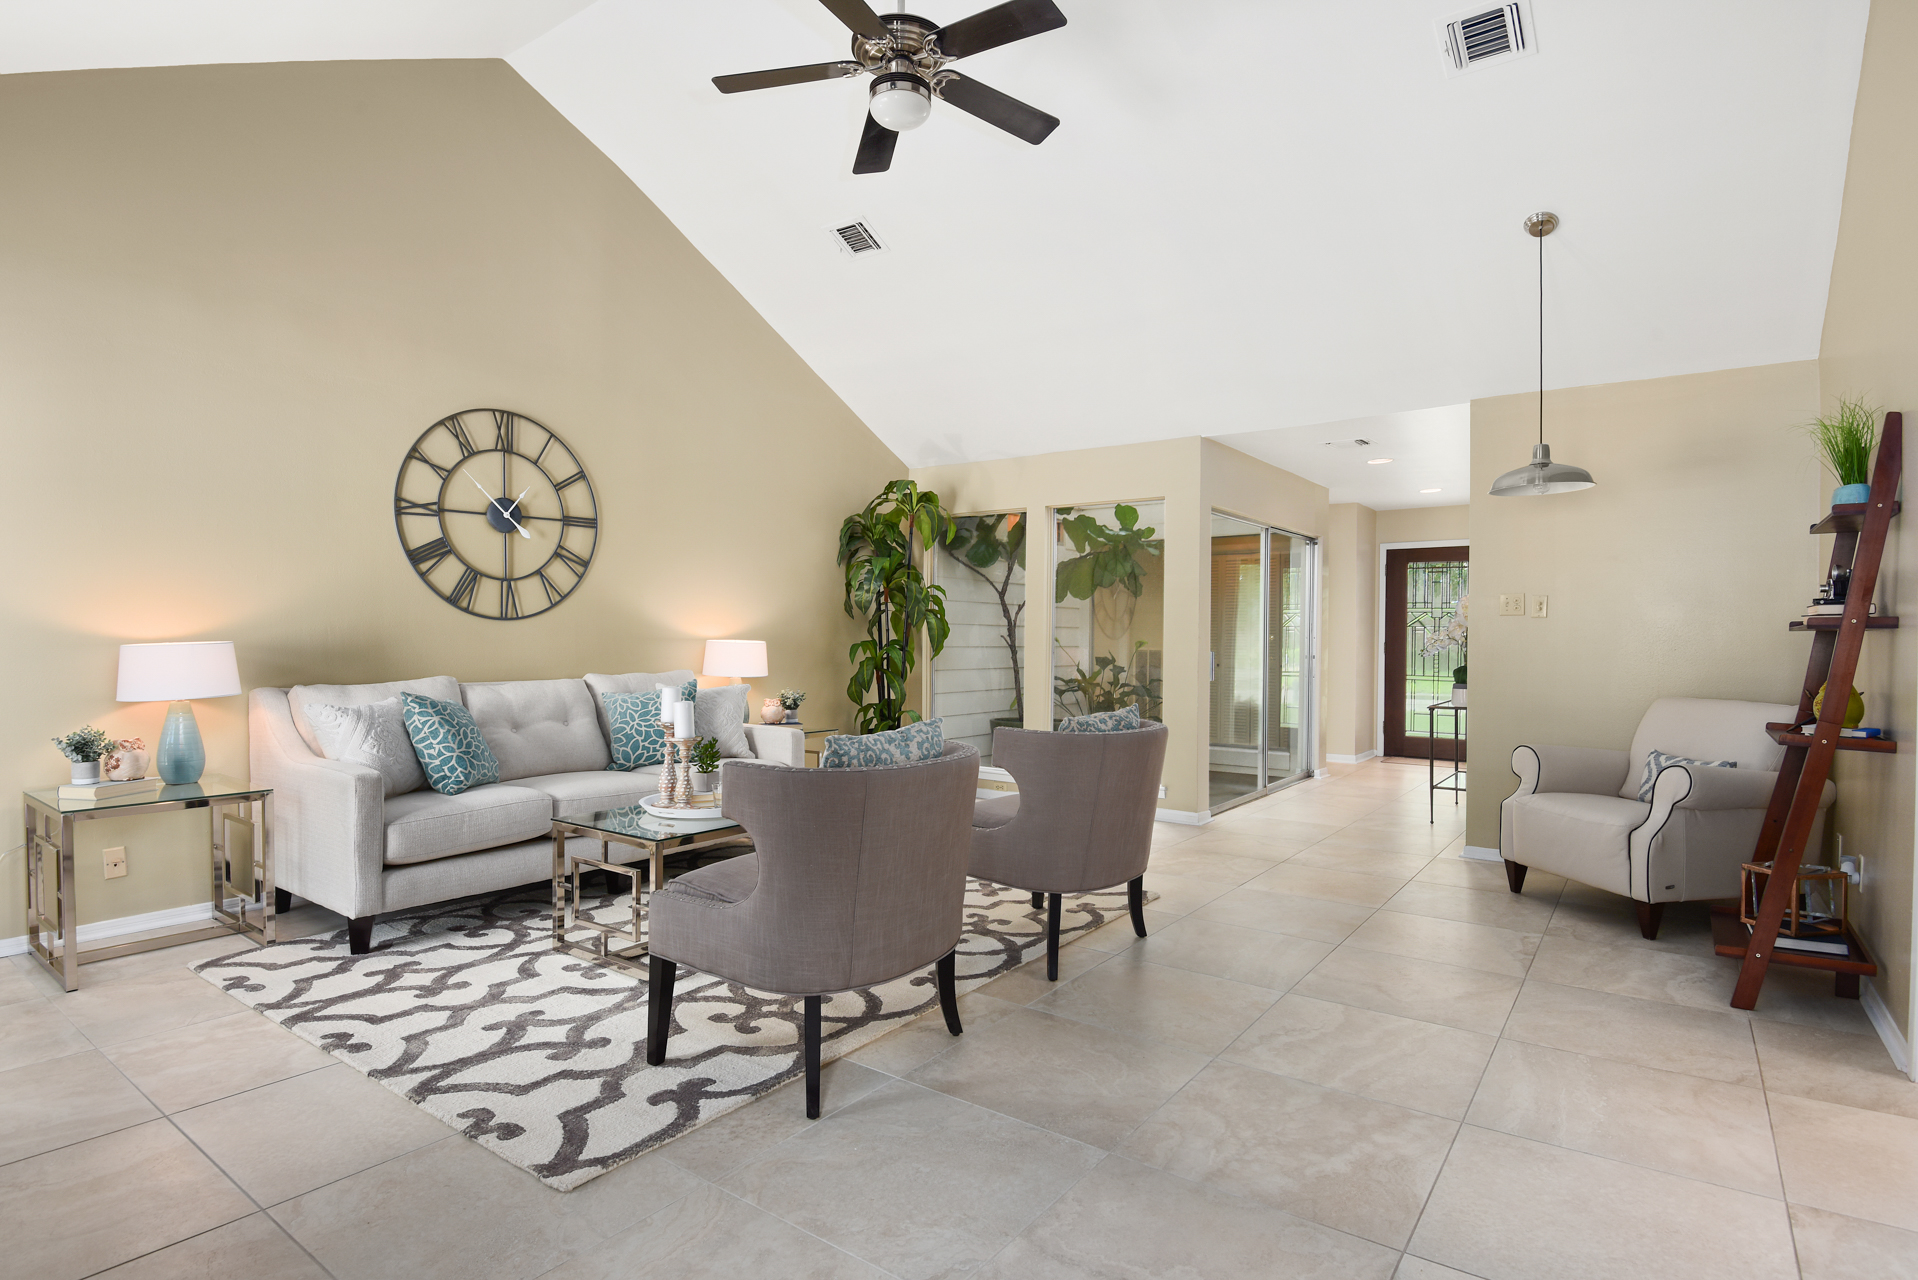 Staging The Nest - Vacant Home Staging - Living Room 2